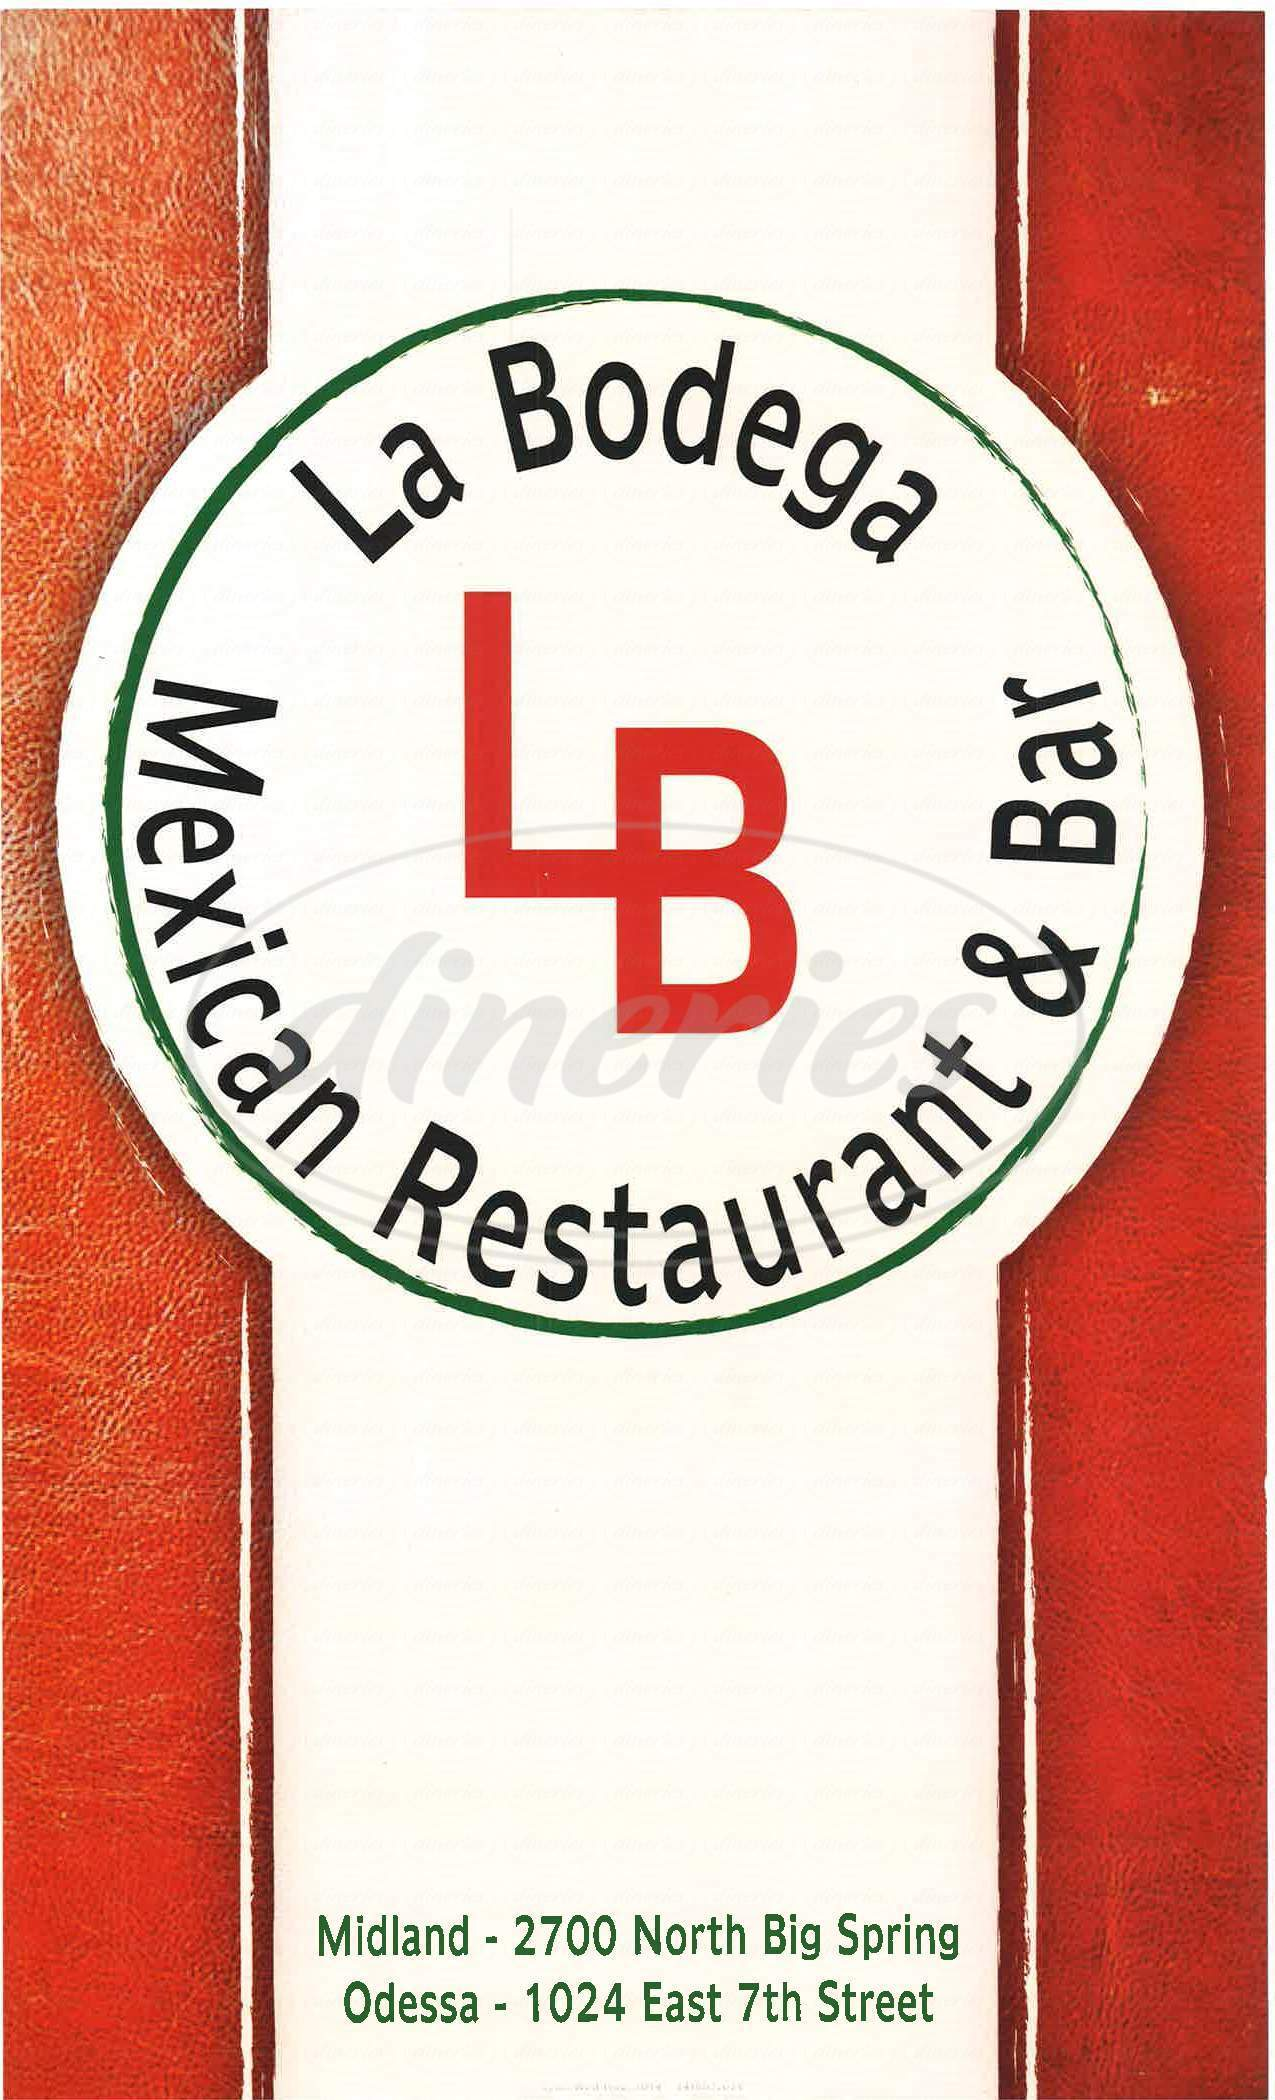 menu for La Bodega Mexican Restaurant